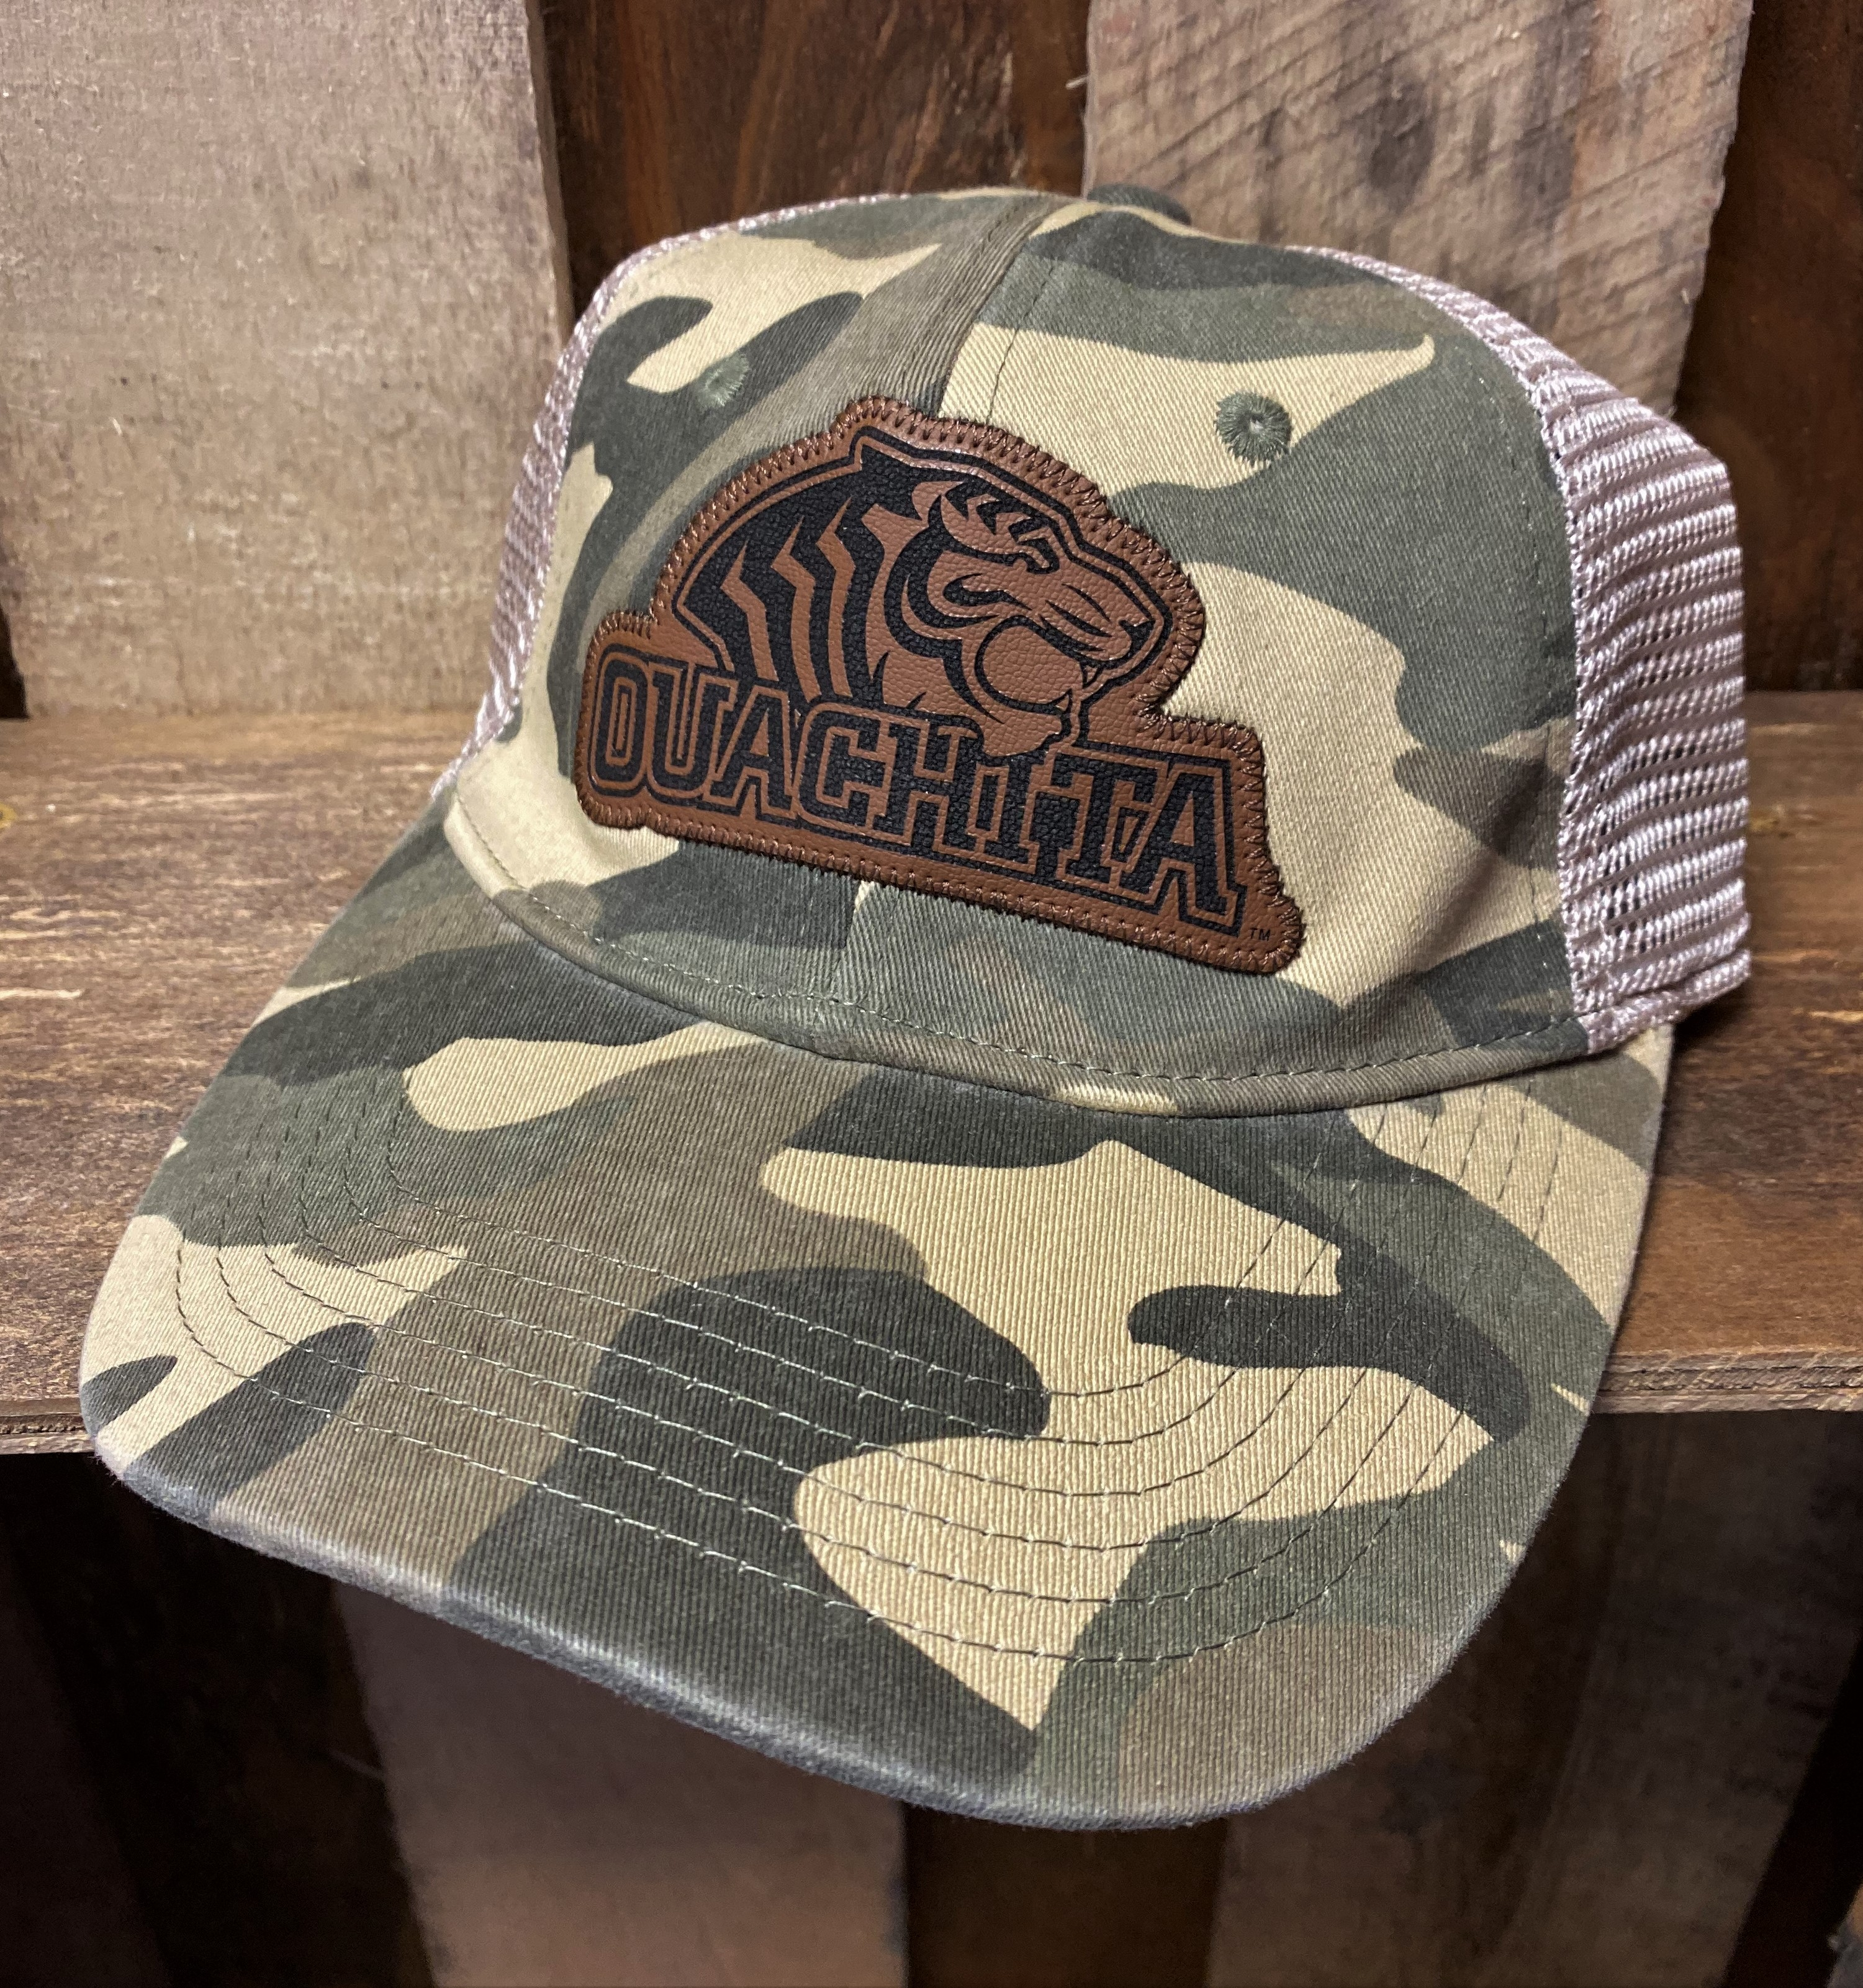 OUACHITA LEATHER MASCOT LO-PRO WASHED CAMO TRUCKER HAT